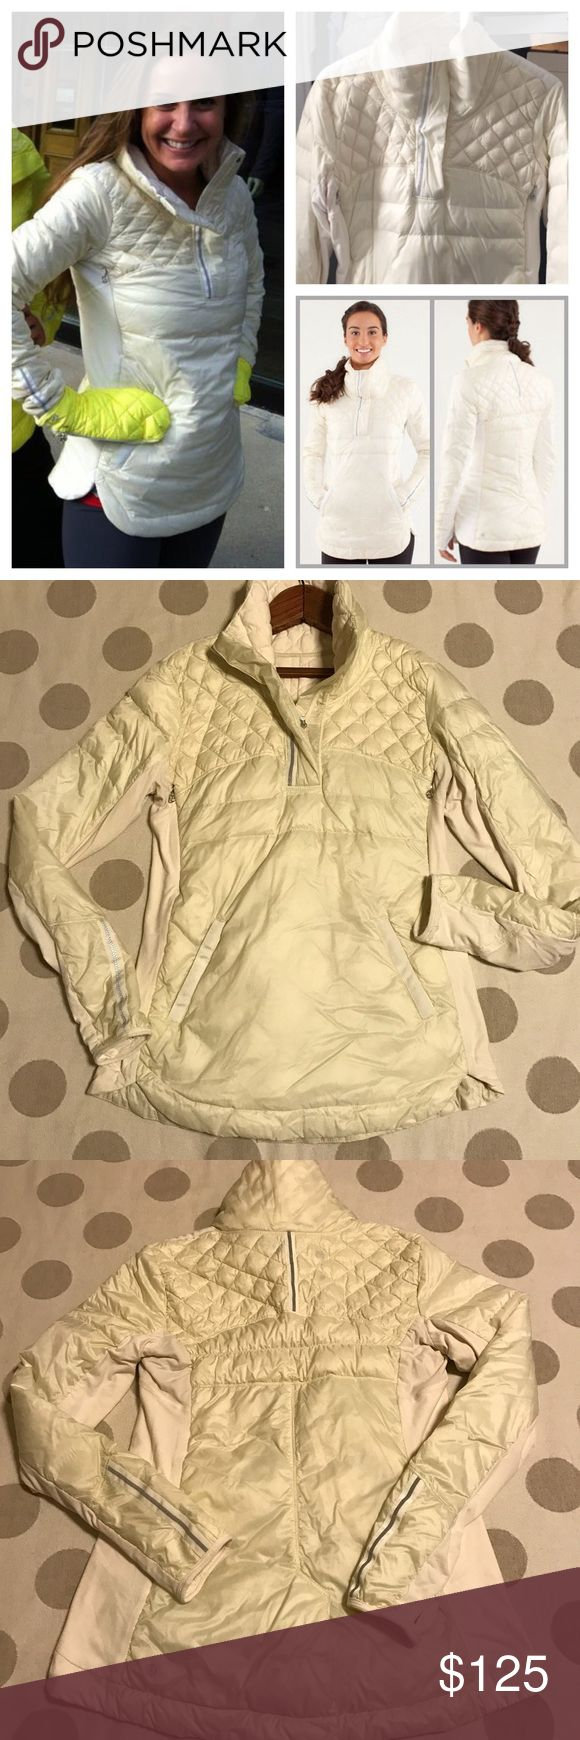 "Lululemon ""what the fluff"" down pullover jacket You're looking at a gently loved Lululemon What the Fluff Pullover. Size 10.  Polar cream. 800-fill-power premium goose down. Has Underarm mesh panelling, zipper vents, reflective details, thumb holes and Front zipper pocket. Rulu fabric panelling provides stretch .Due to the light color, you may seem some of the down. Not considered a flaw. Only flaw is very faint discoloration on inner collar. Color is like stock photo. Lighting in my room…"